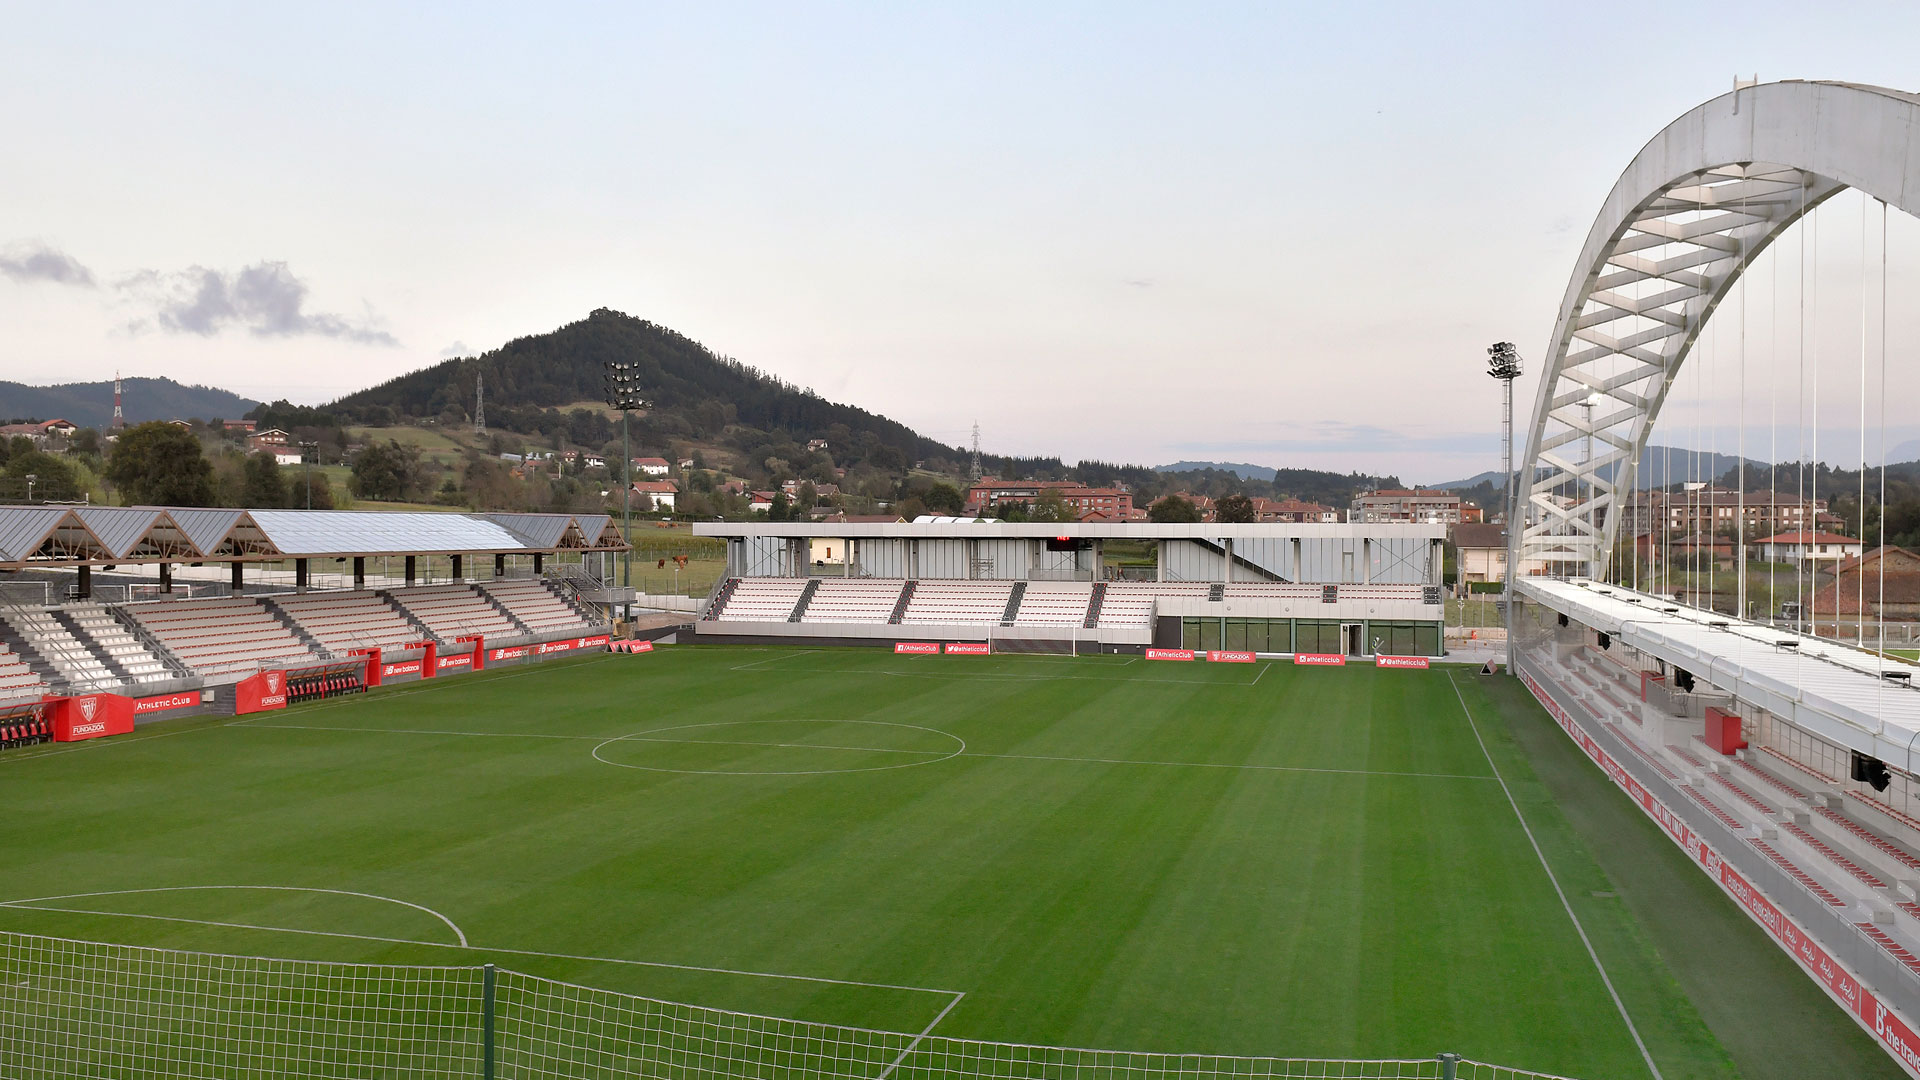 Lezama players: variation in contracting status